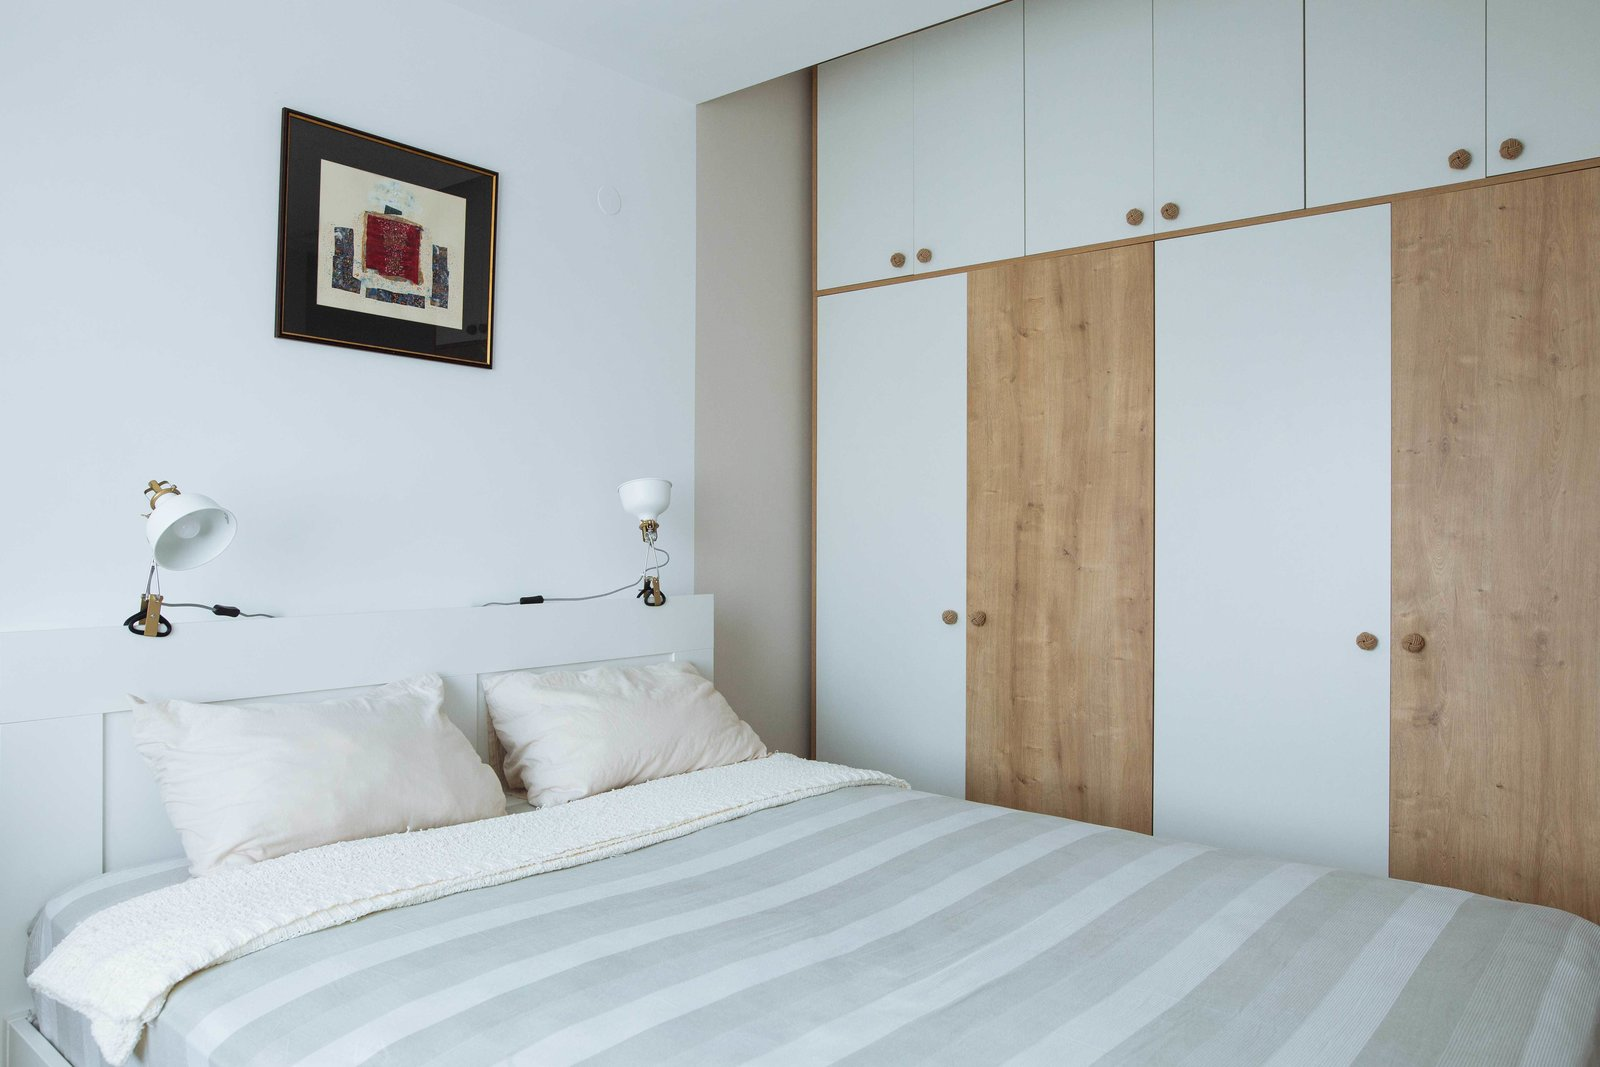 Tagged: Bedroom, Bed, Wardrobe, Lamps, Ceiling, and Laminate.  Best Bedroom Laminate Bed Photos from Cozy in the Big City